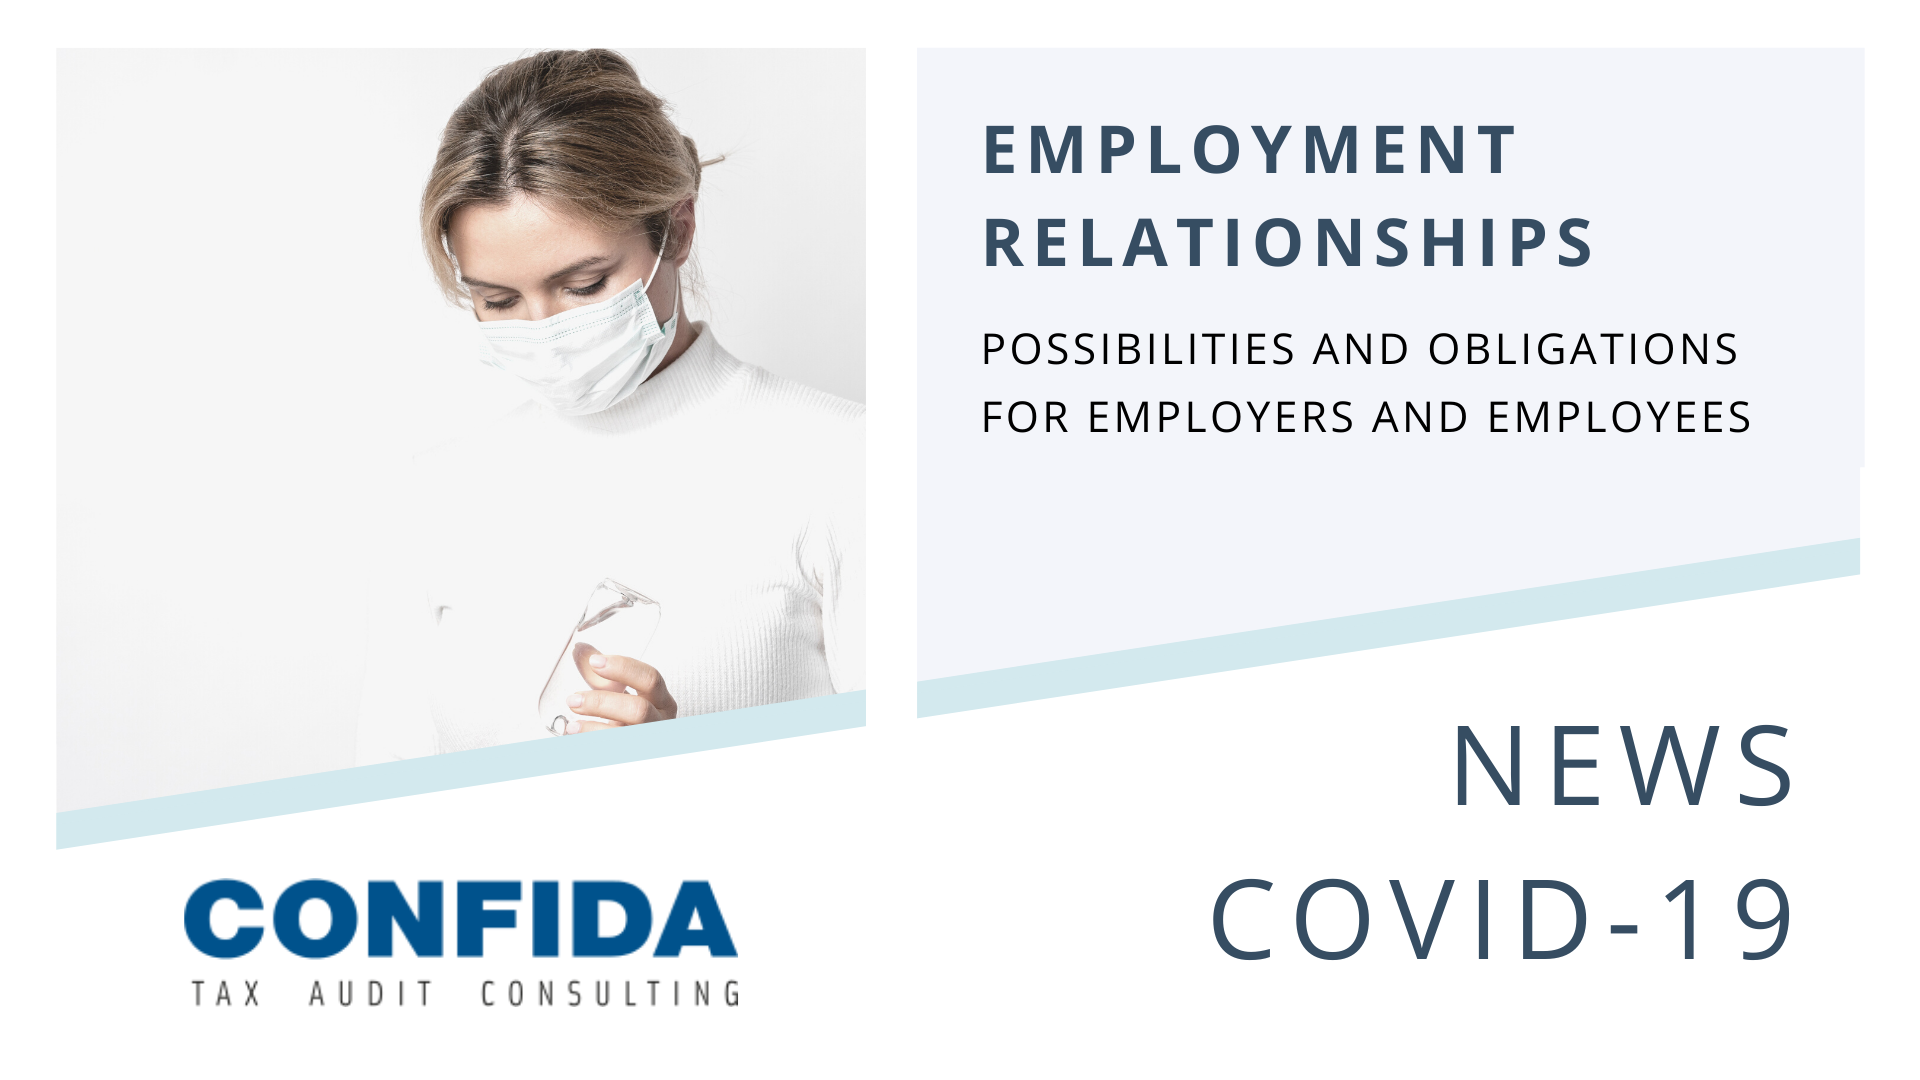 COVID-19: Employment Relationships